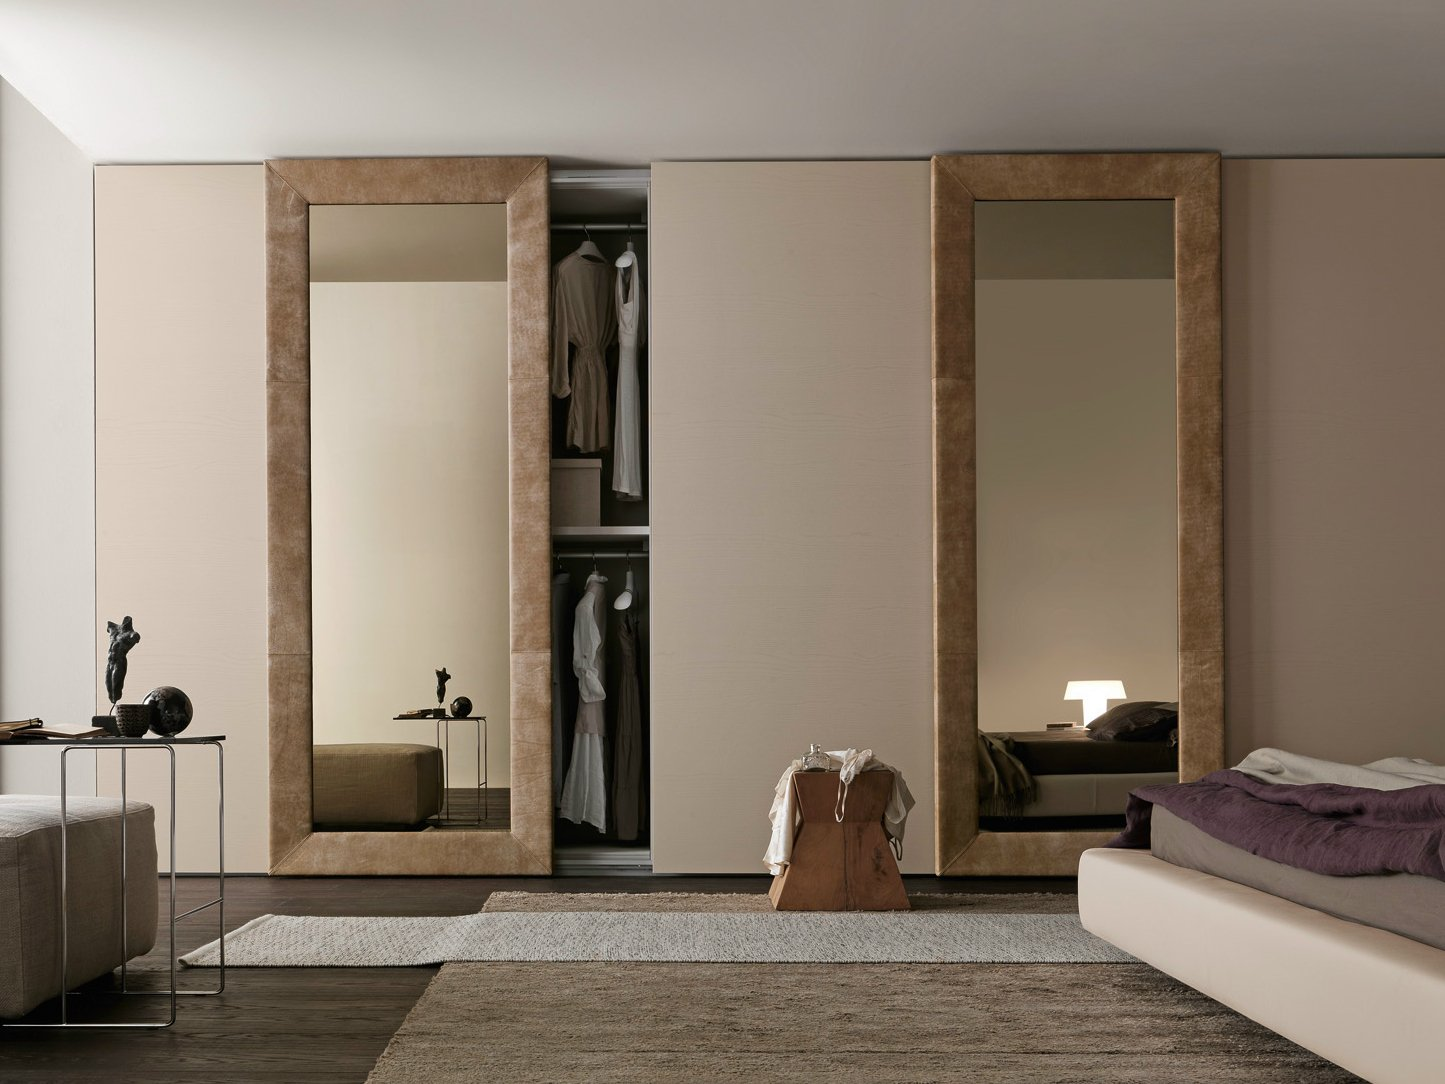 Sectional Mirrored Wardrobe With Sliding Doors MIRROR By